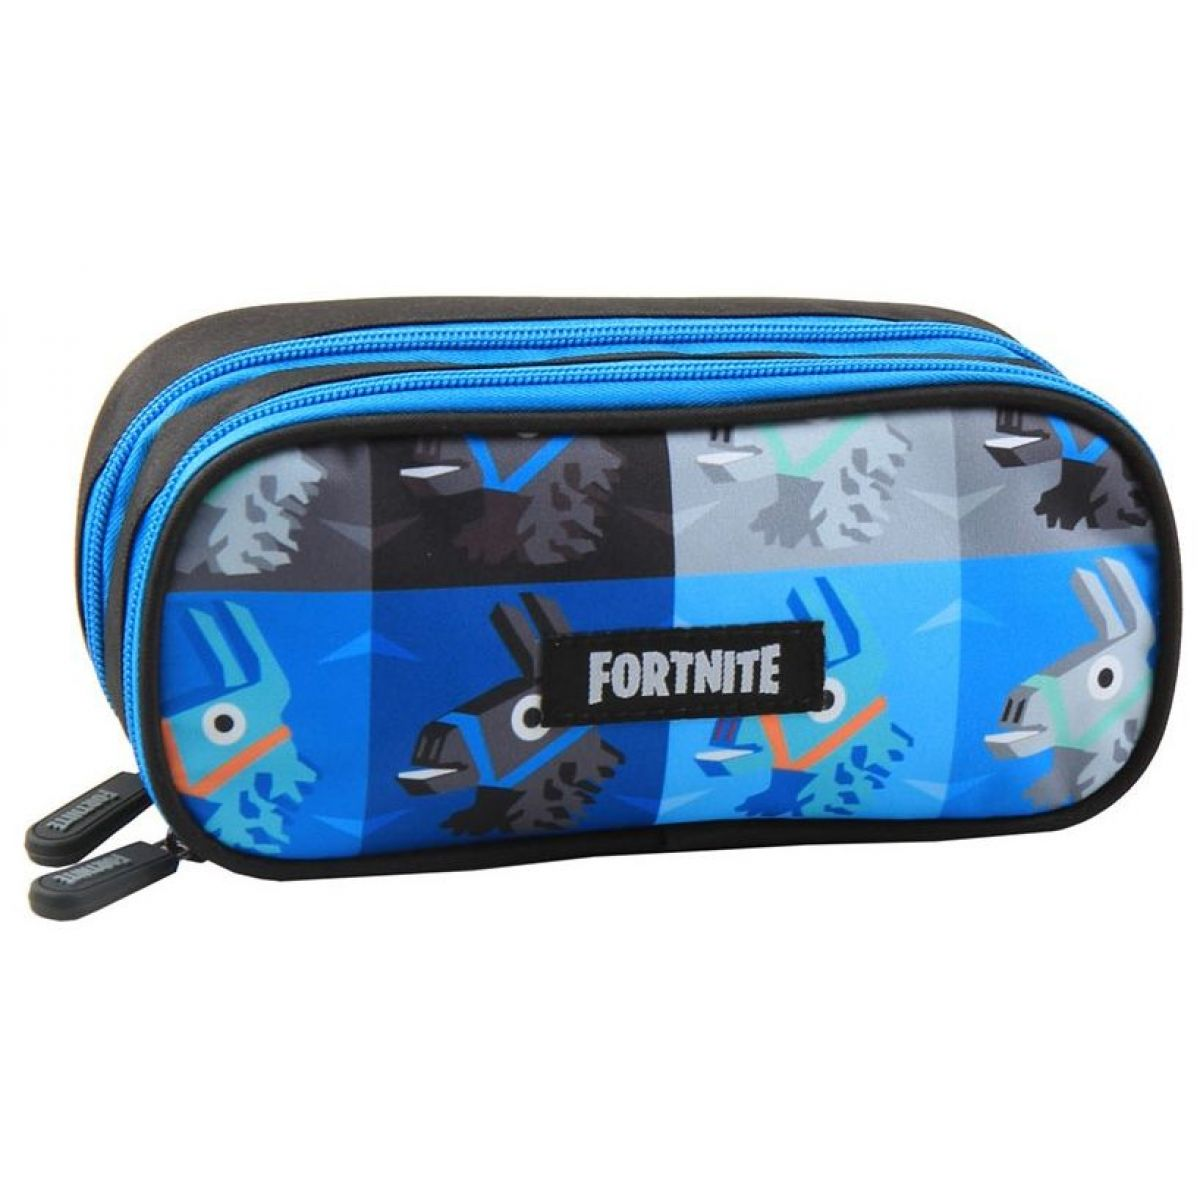 Fortnite Penál se 2 zipy 04697